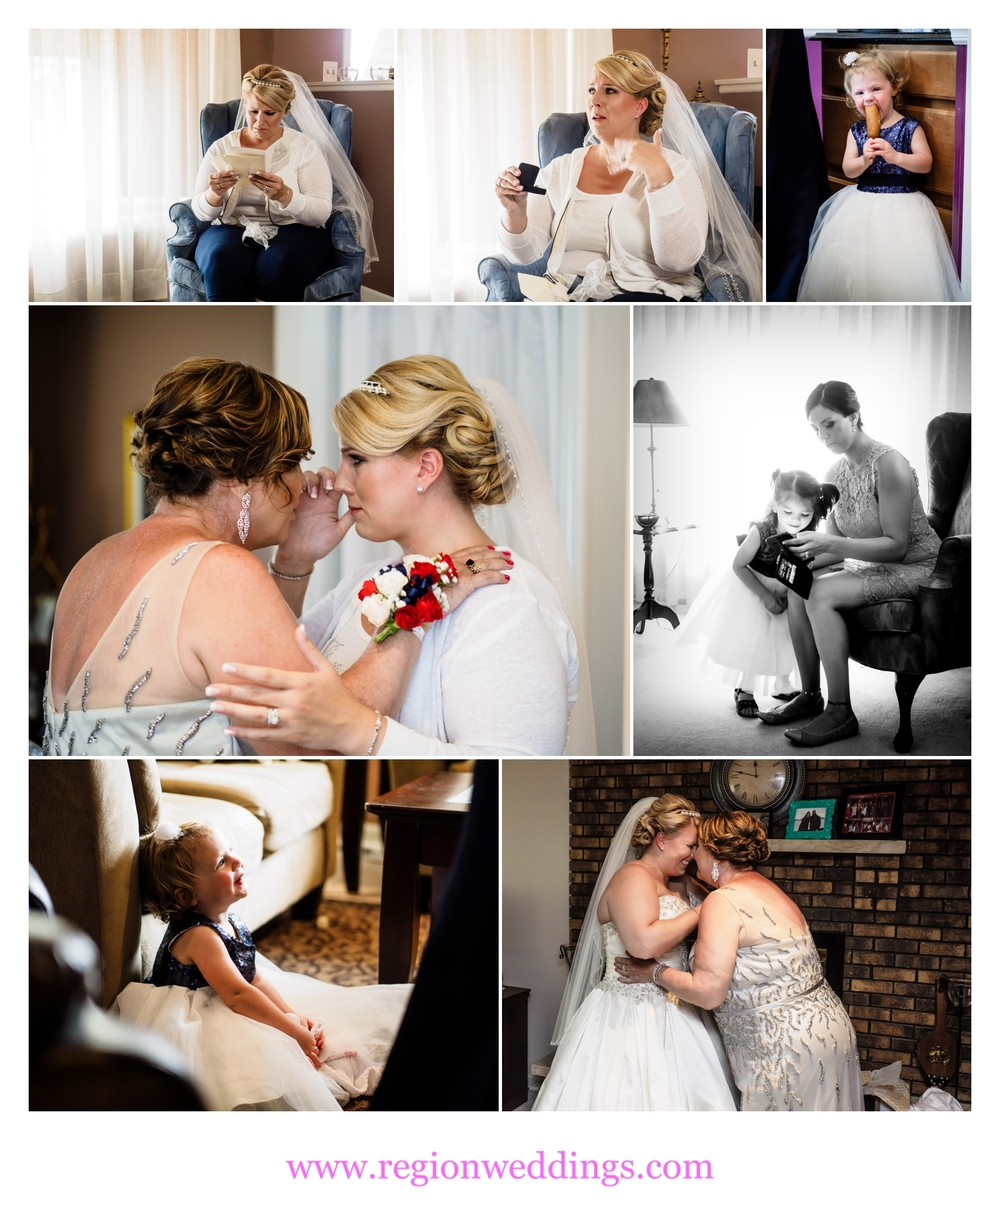 Many emotional moments unfold as the bride gets ready on wedding day.